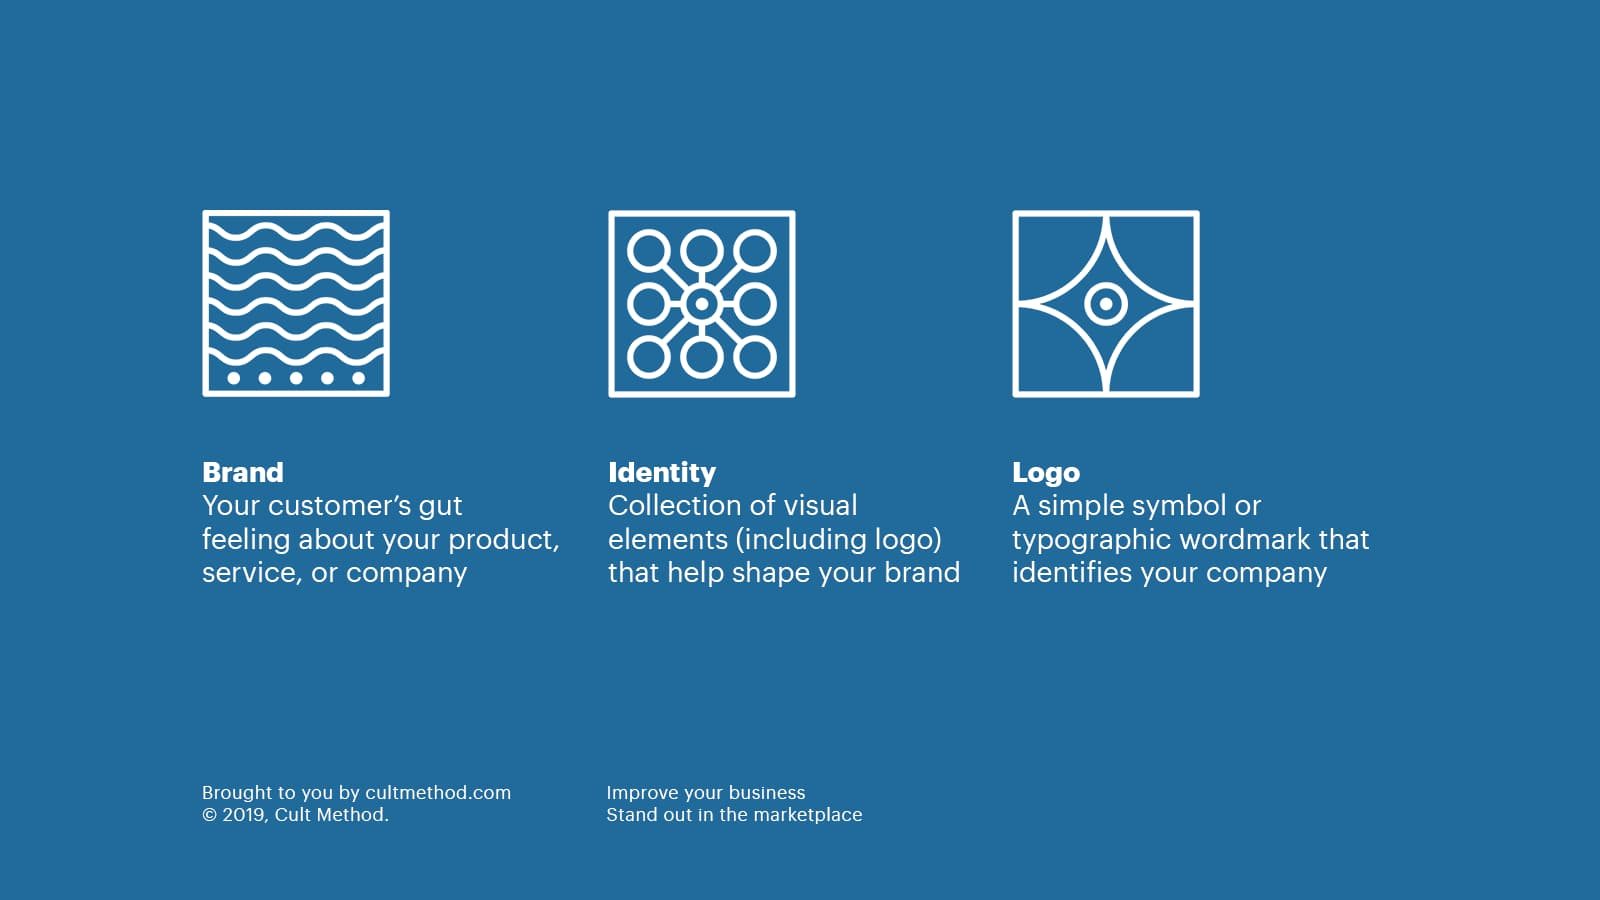 Brand vs Visual Identity vs Logo